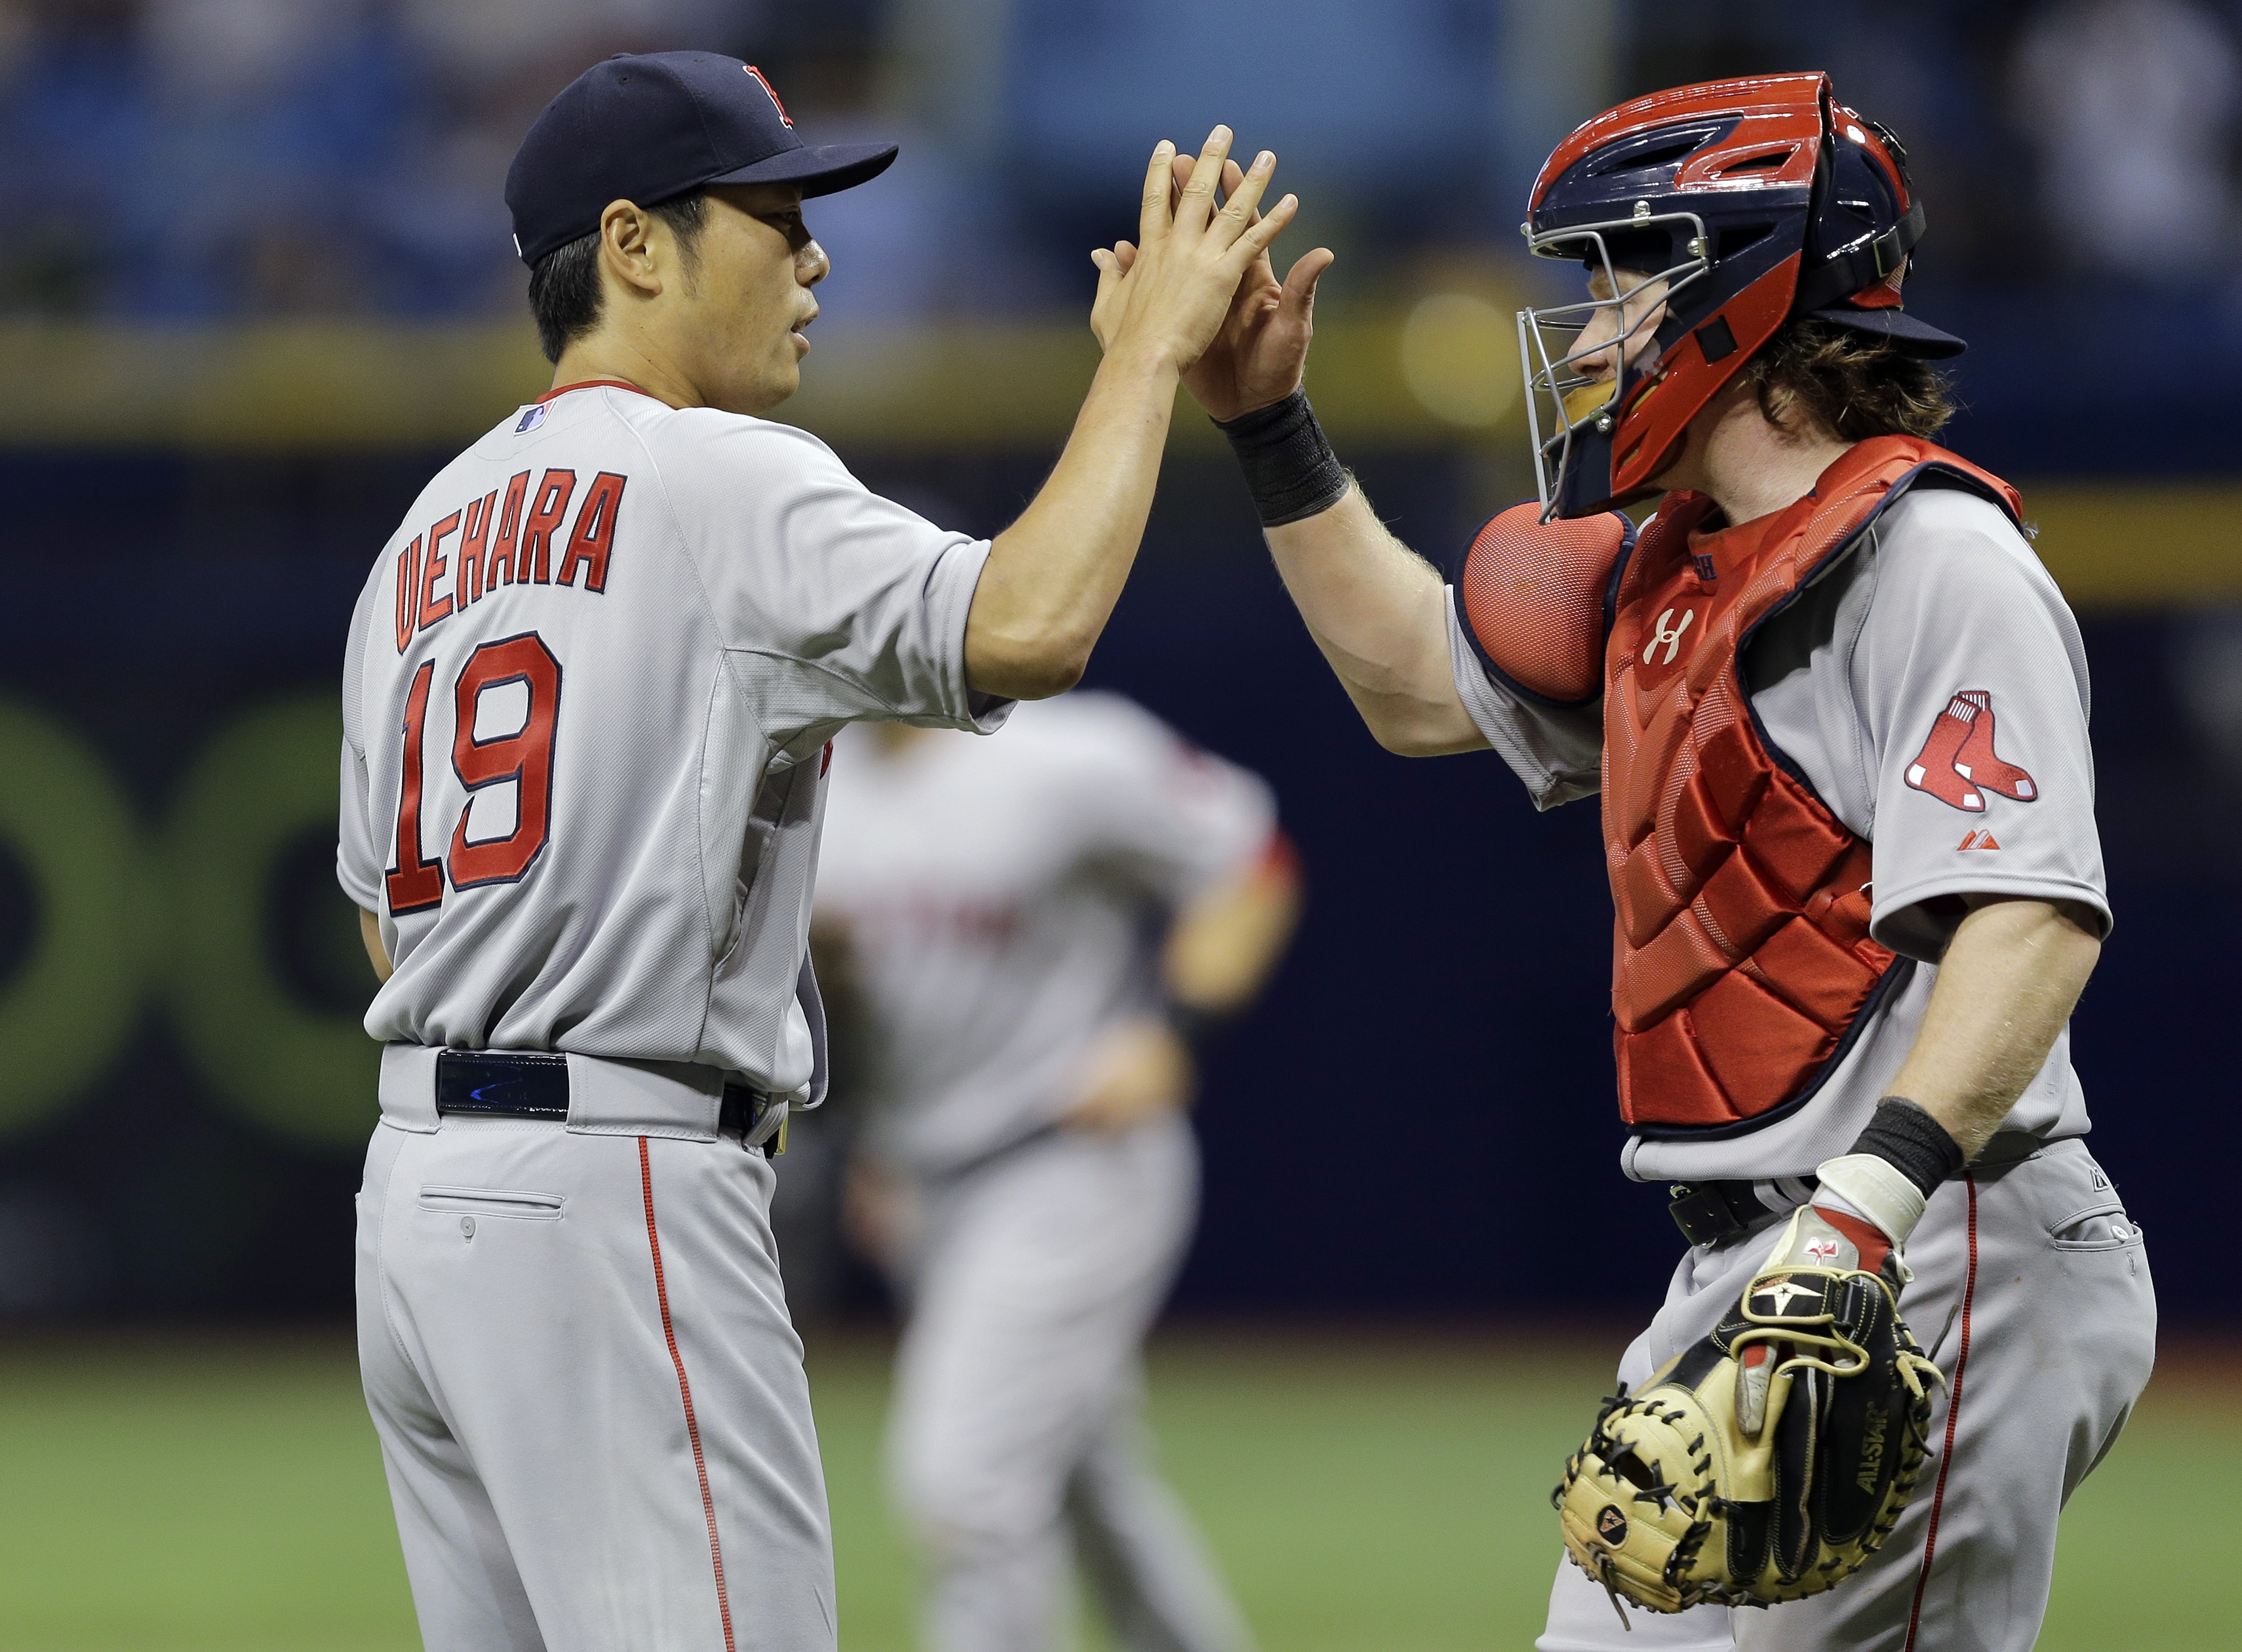 Boston Red Sox relief pitcher Koji Uehara, left, of Japan, high fives catcher Ryan Hanigan after closing out the Tampa Bay Rays during the ninth inning of a baseball game Tuesday, April 21, 2015, in St. Petersburg, Fla. Uehara picked up the save in the Re